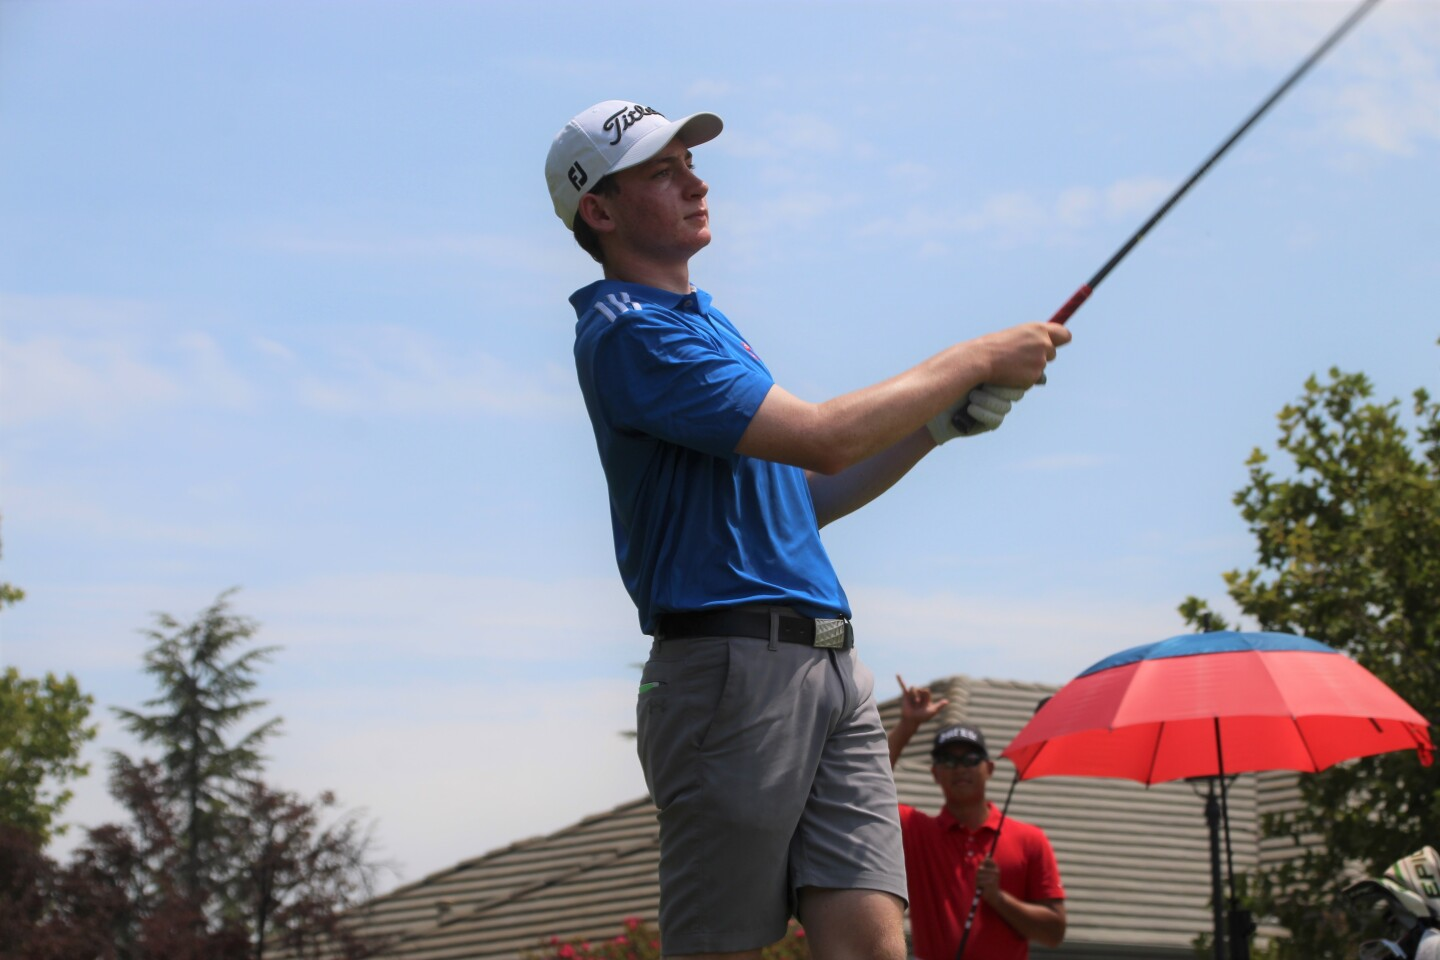 Ryan Voois tee shot with photo bomb-2021-AJGA Junior at Ruby Hill presented by Visit Tri-Valley.JPG